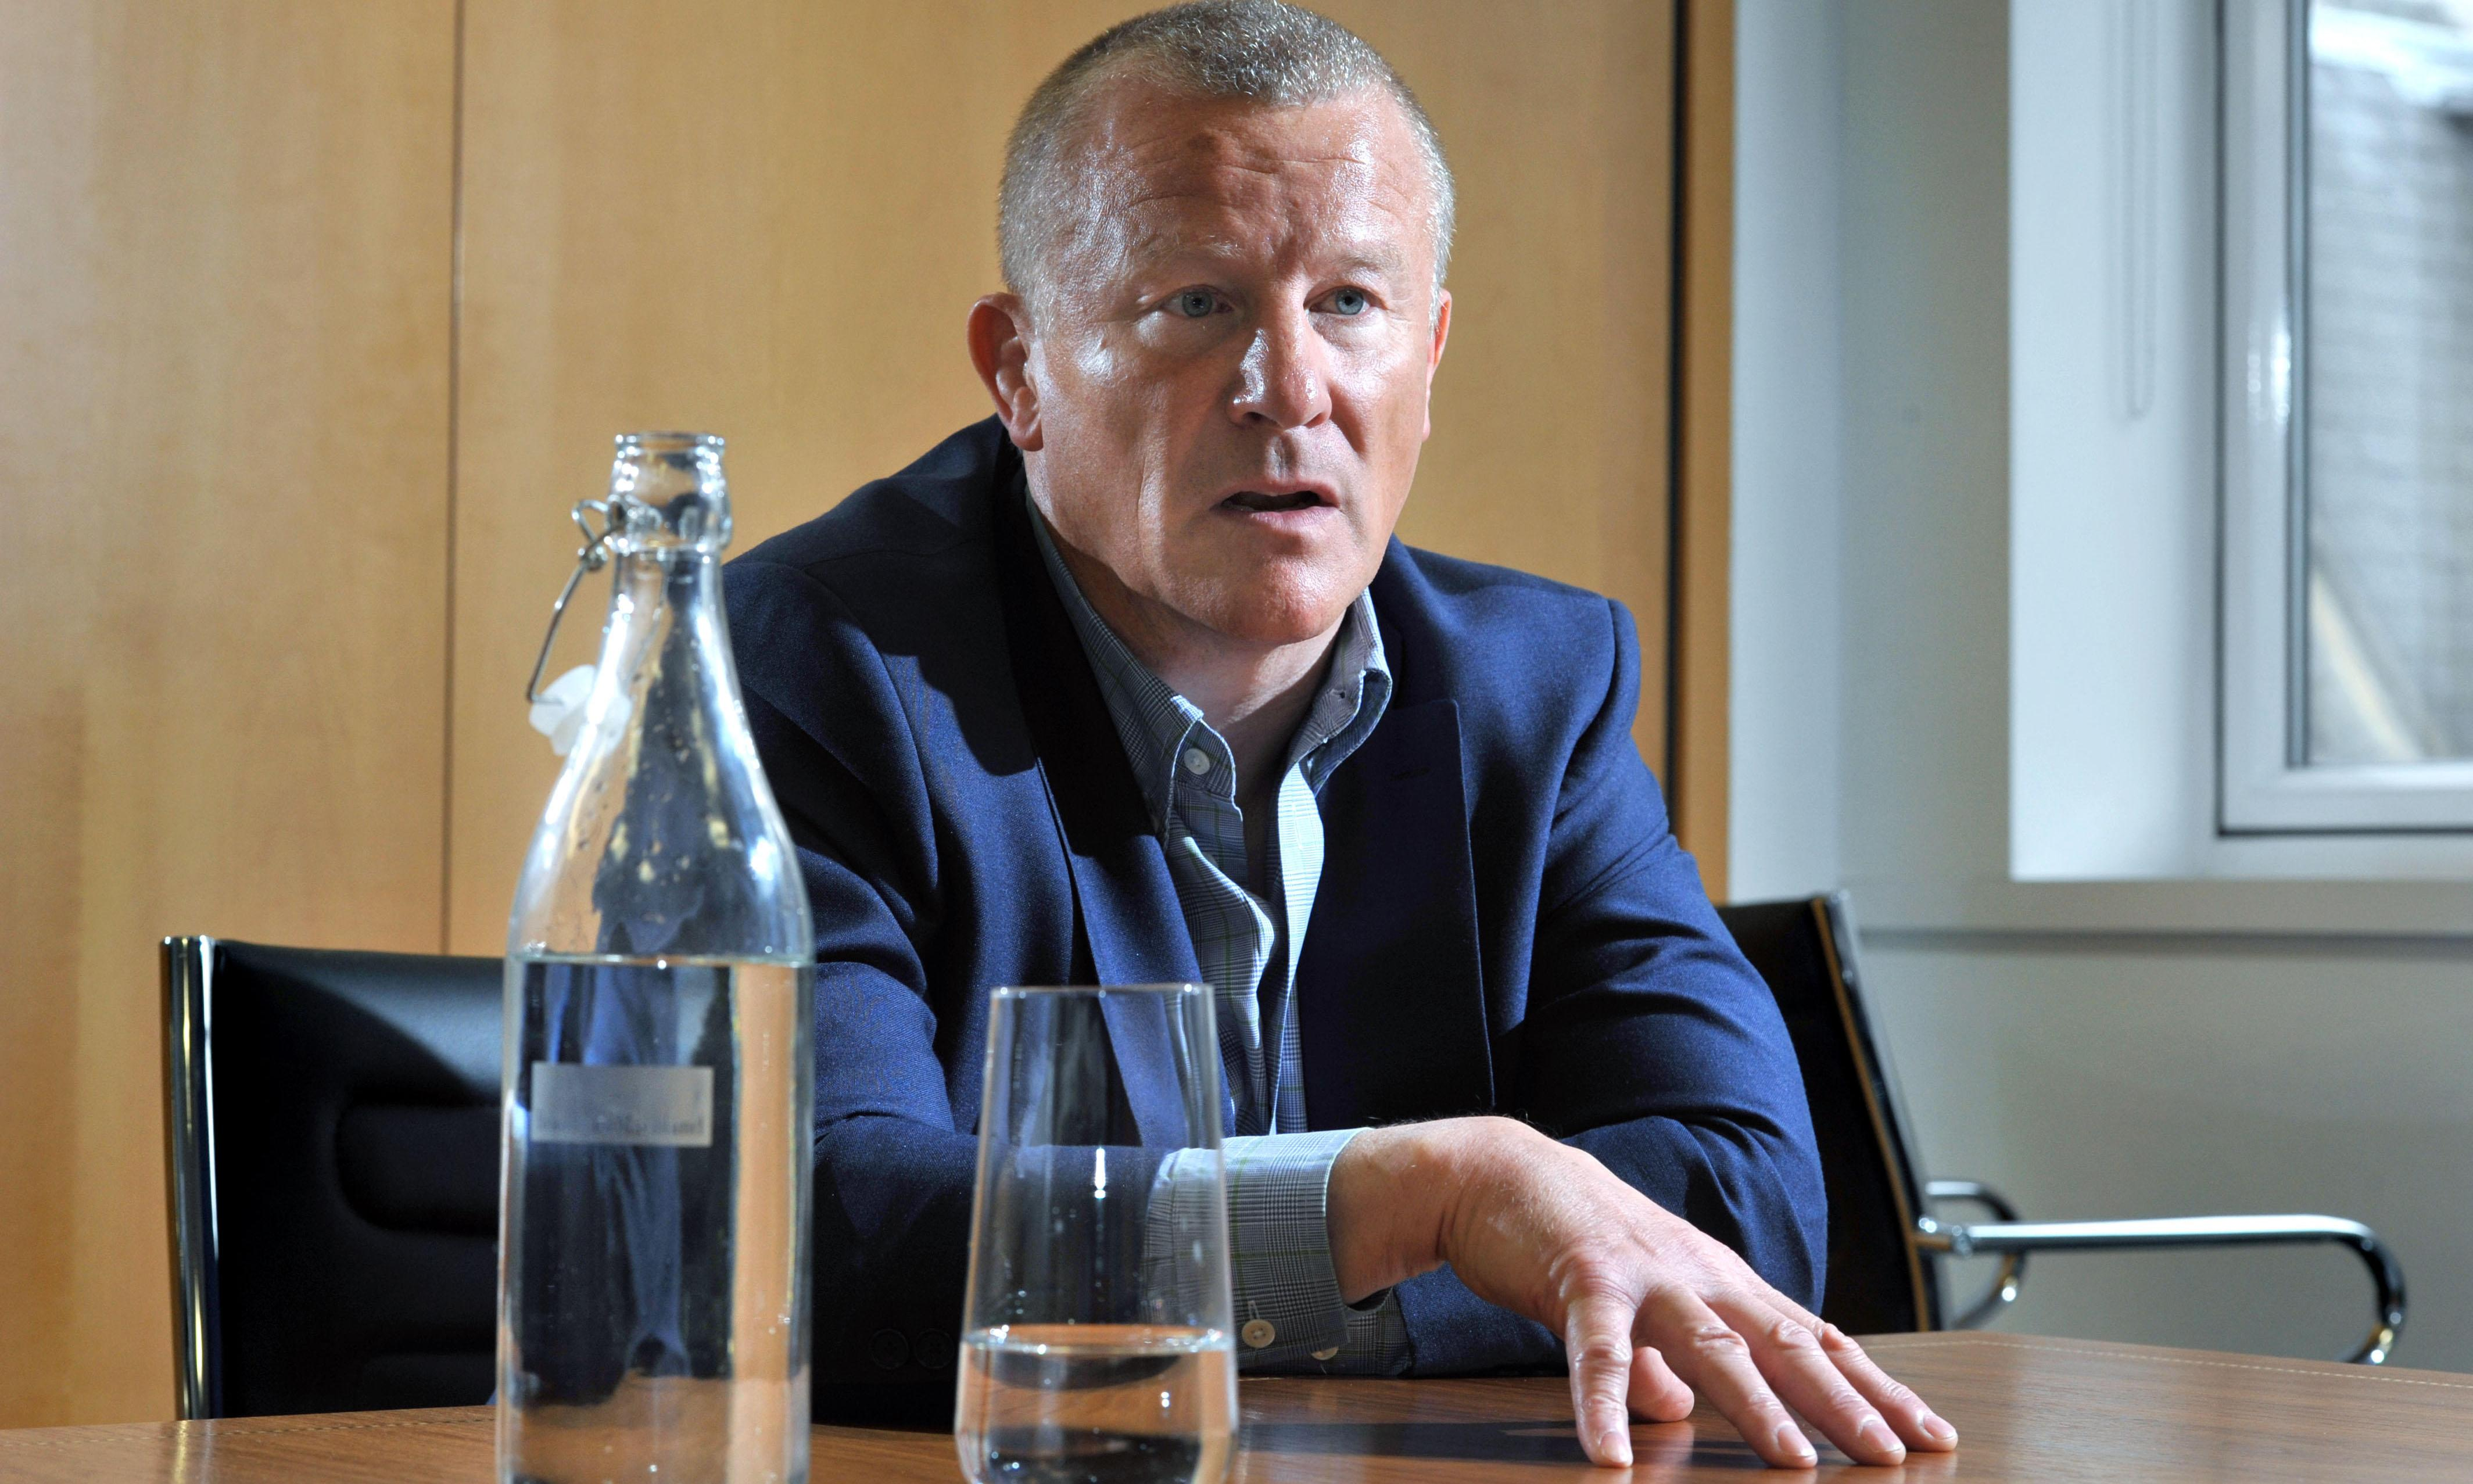 Neil Woodford fund was sailing close to the wind, watchdog says